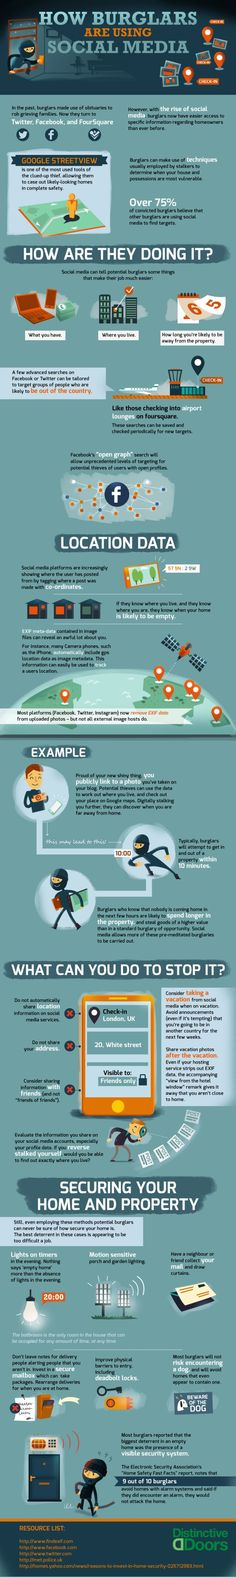 How Burglars Are Using Social Media Cómo Usan Los Ladrones Social Media  ---- #socialmedia #infographic #2013